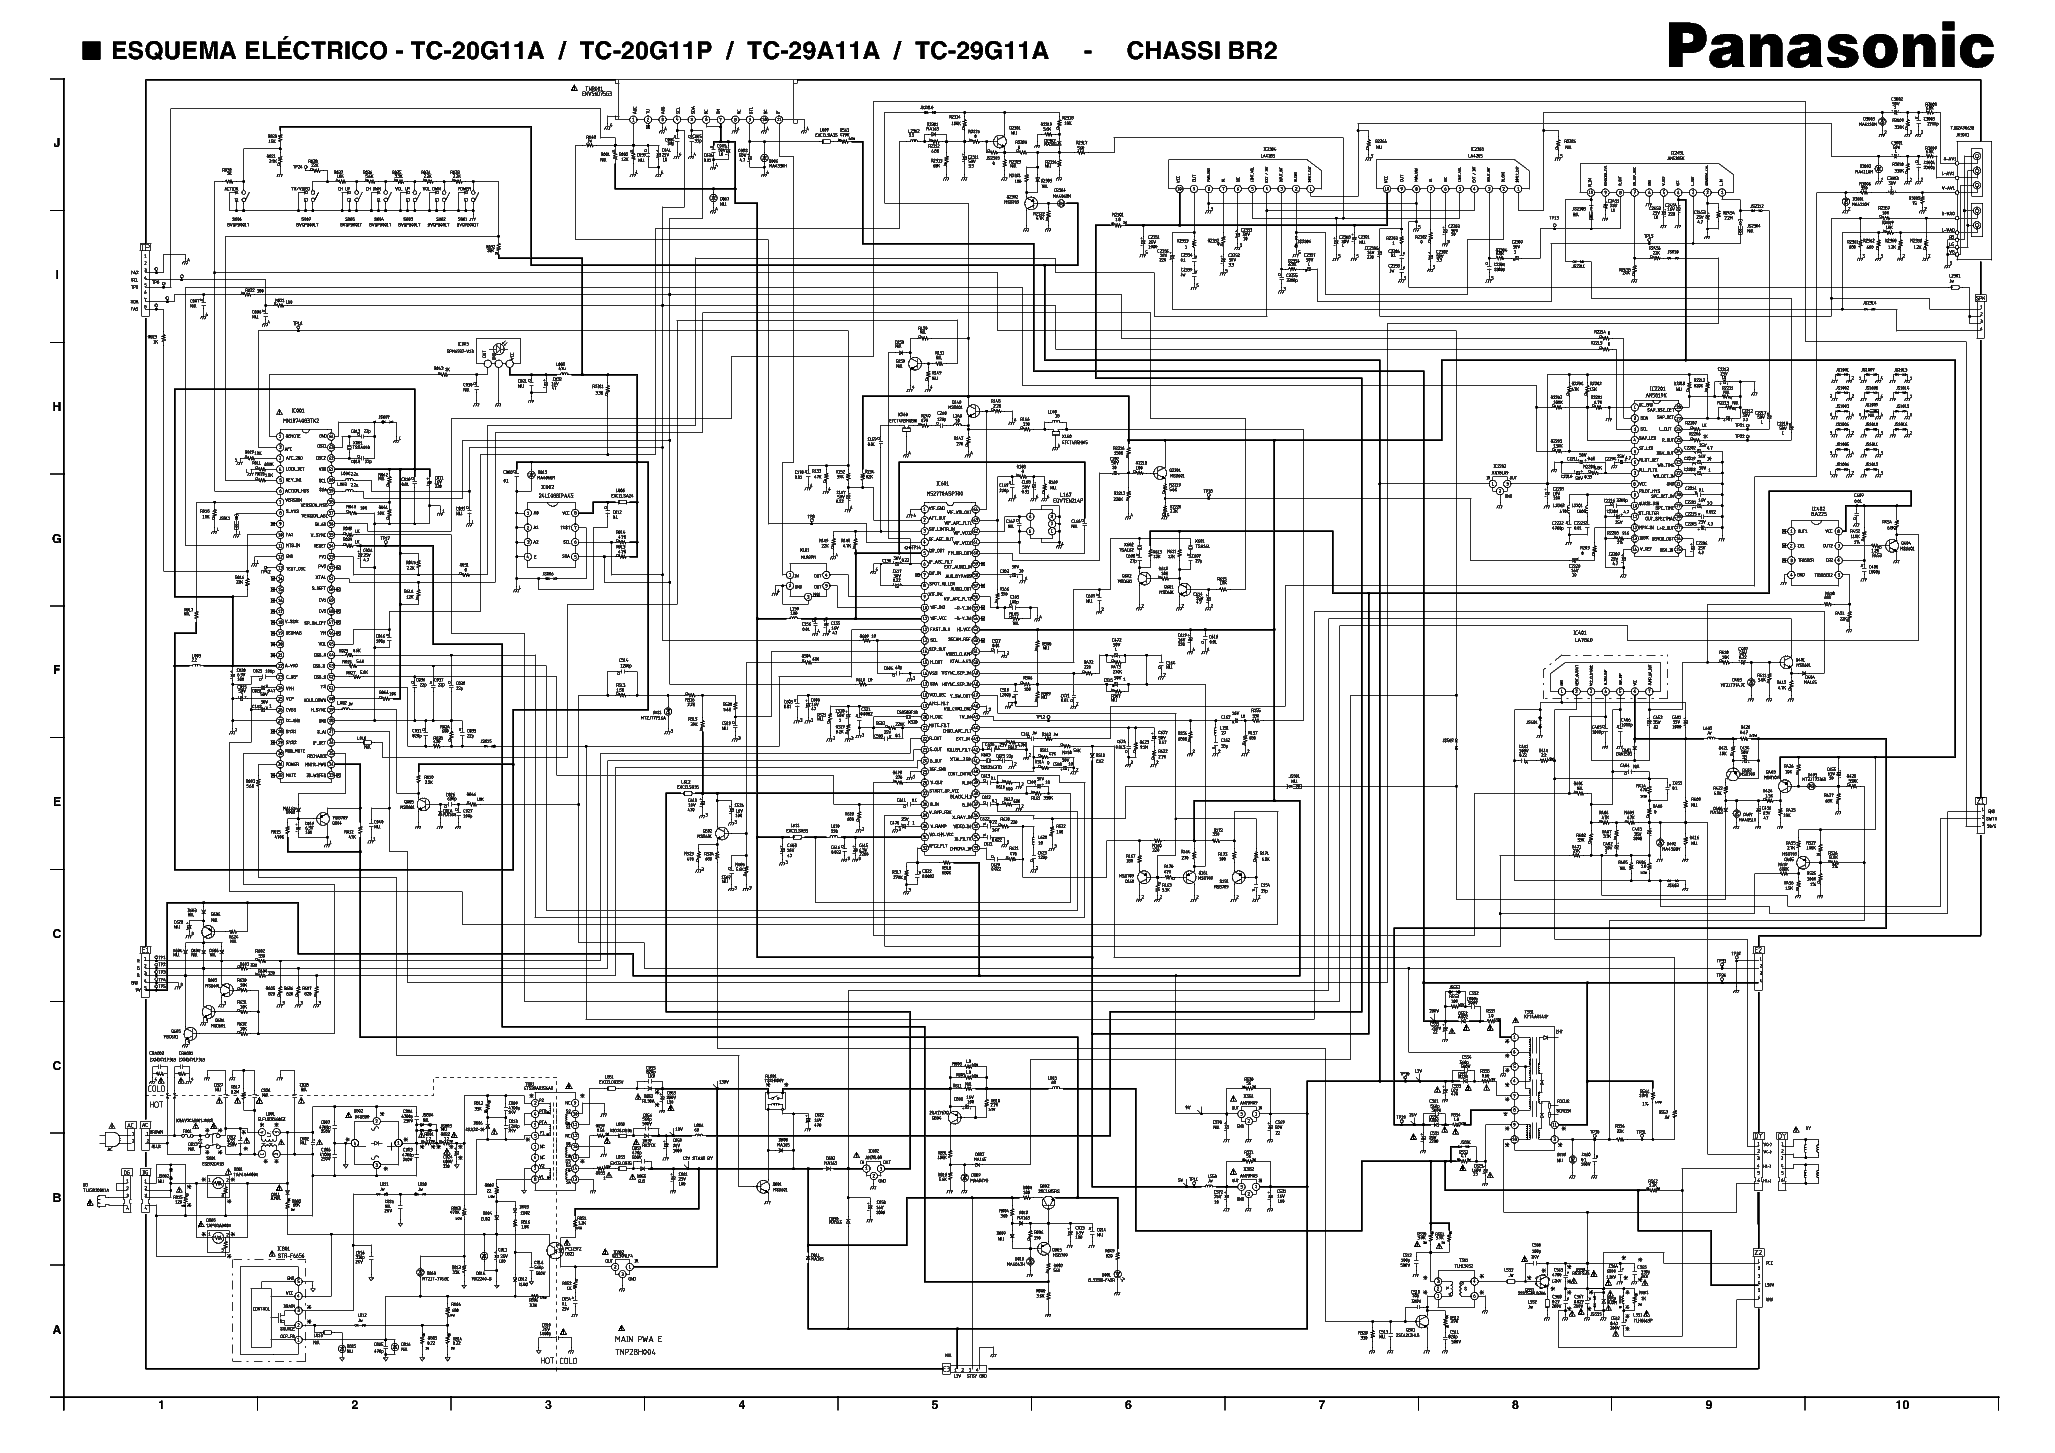 Free Electrical Drawing At For Personal Use Wire Harness Connectors Bosch Download Wiring Diagram Schematic 2055x1453 Panasonic Tv Circuit Zen Components